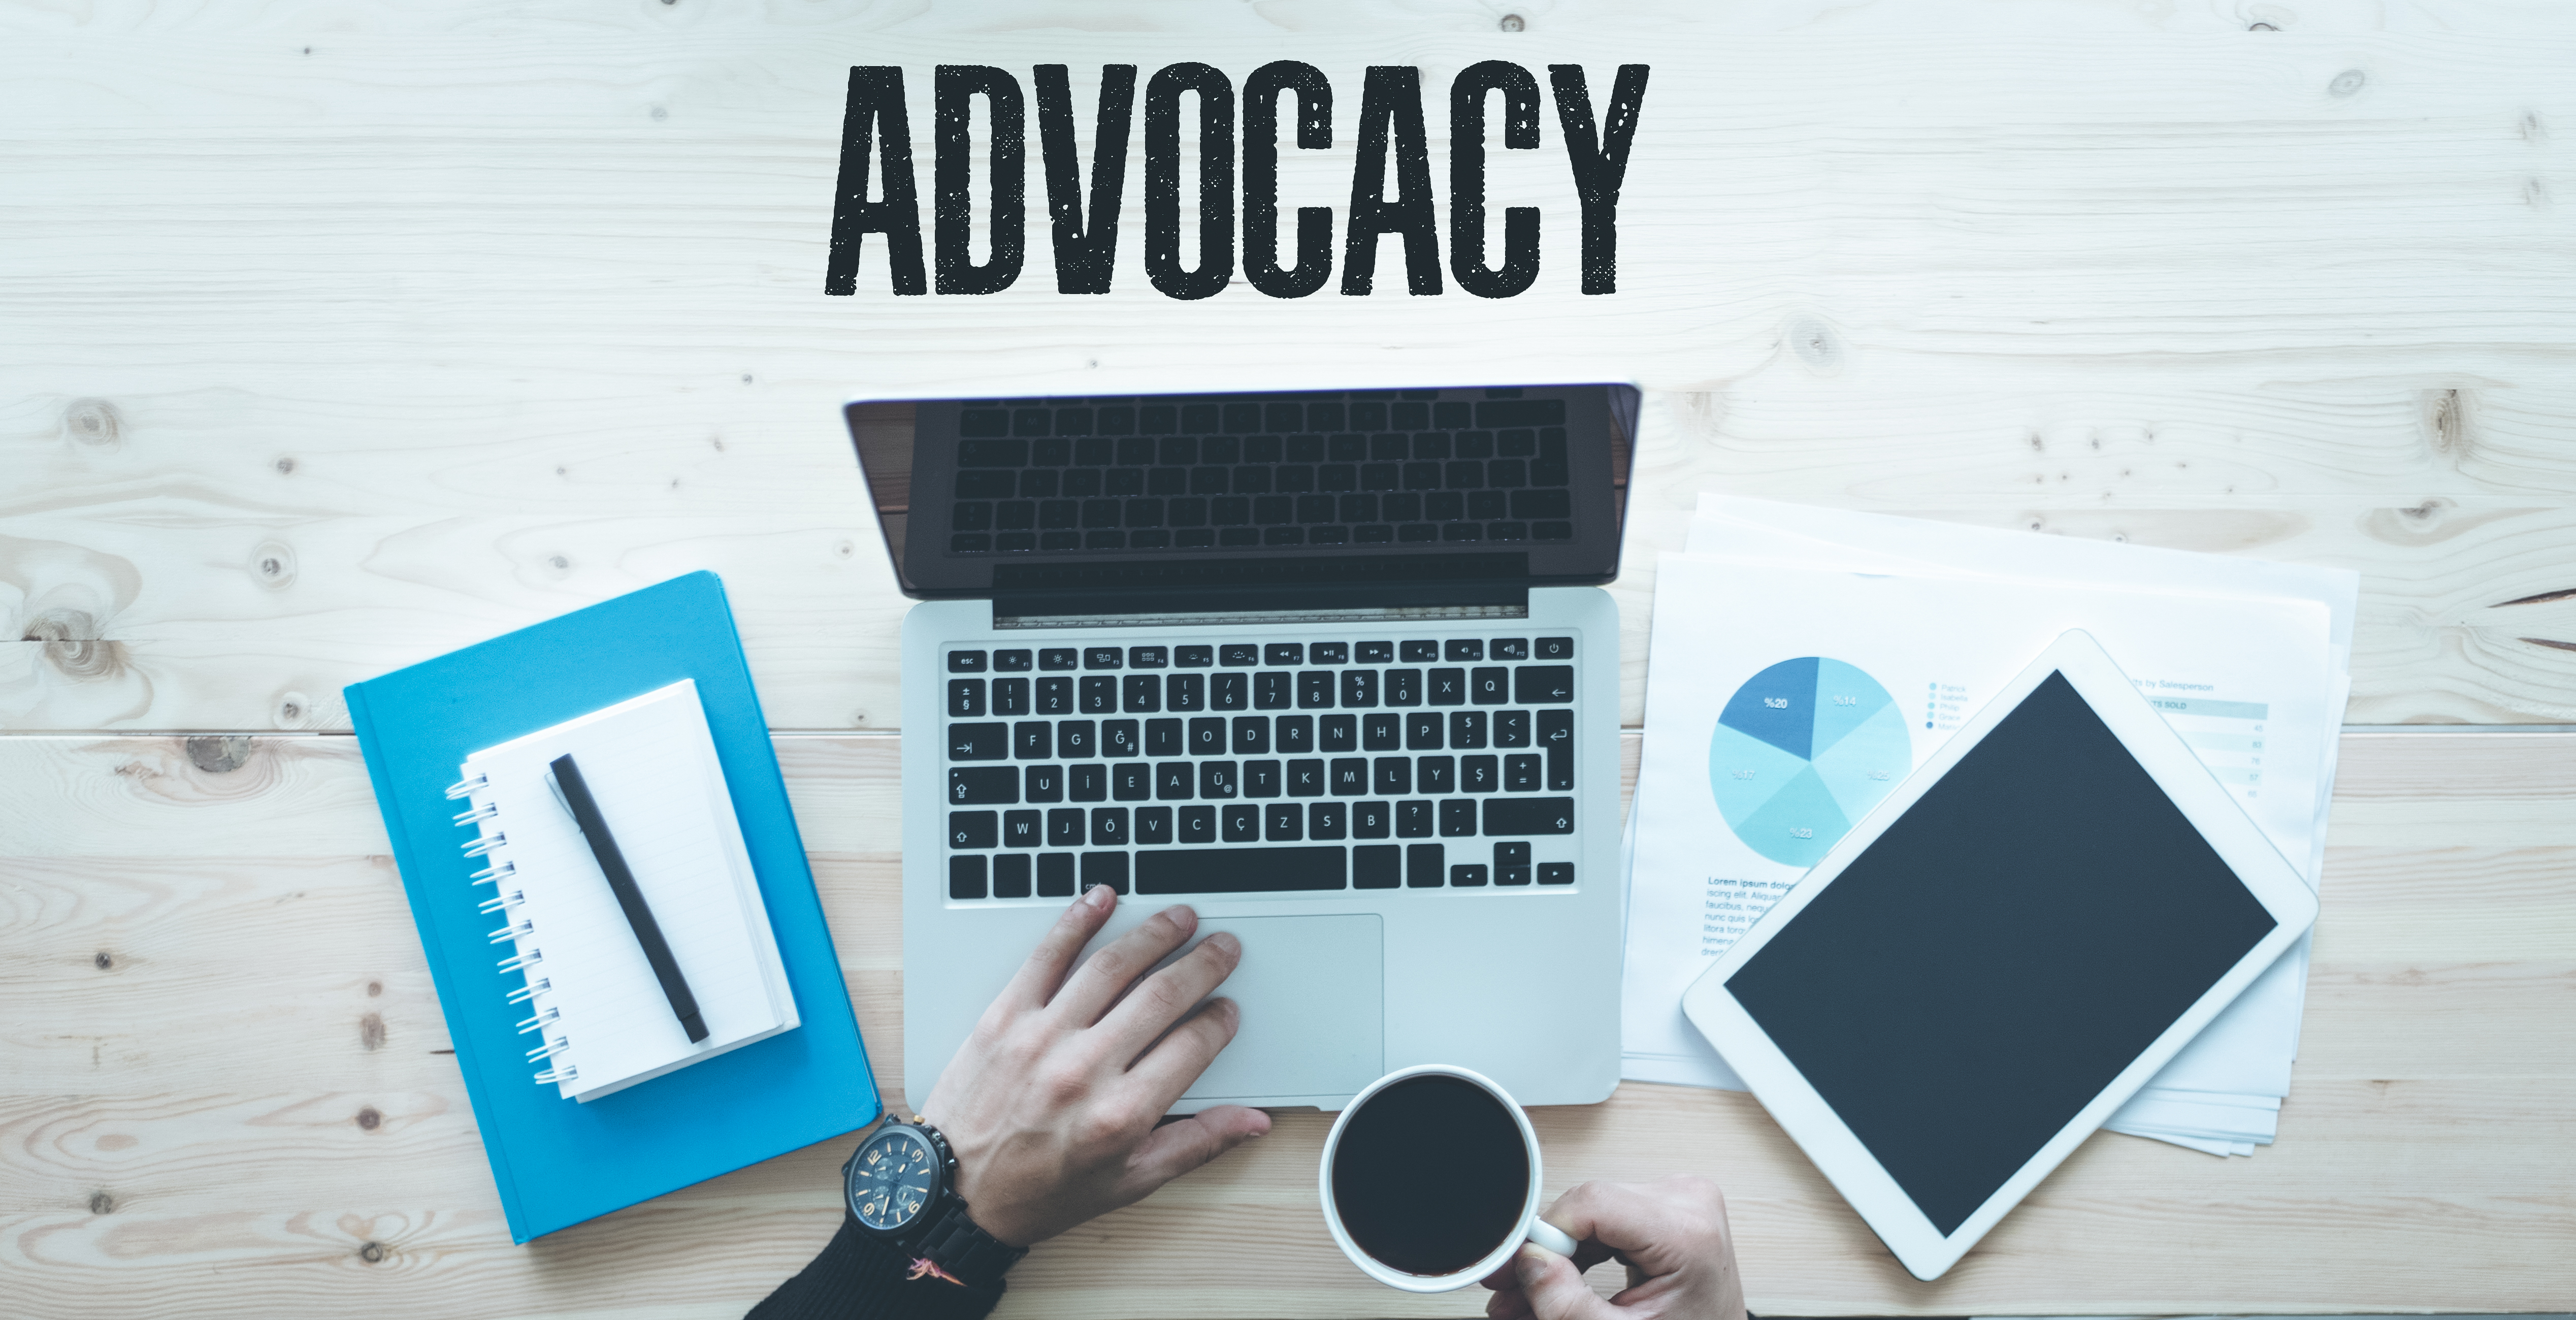 5 ways to be an advocate